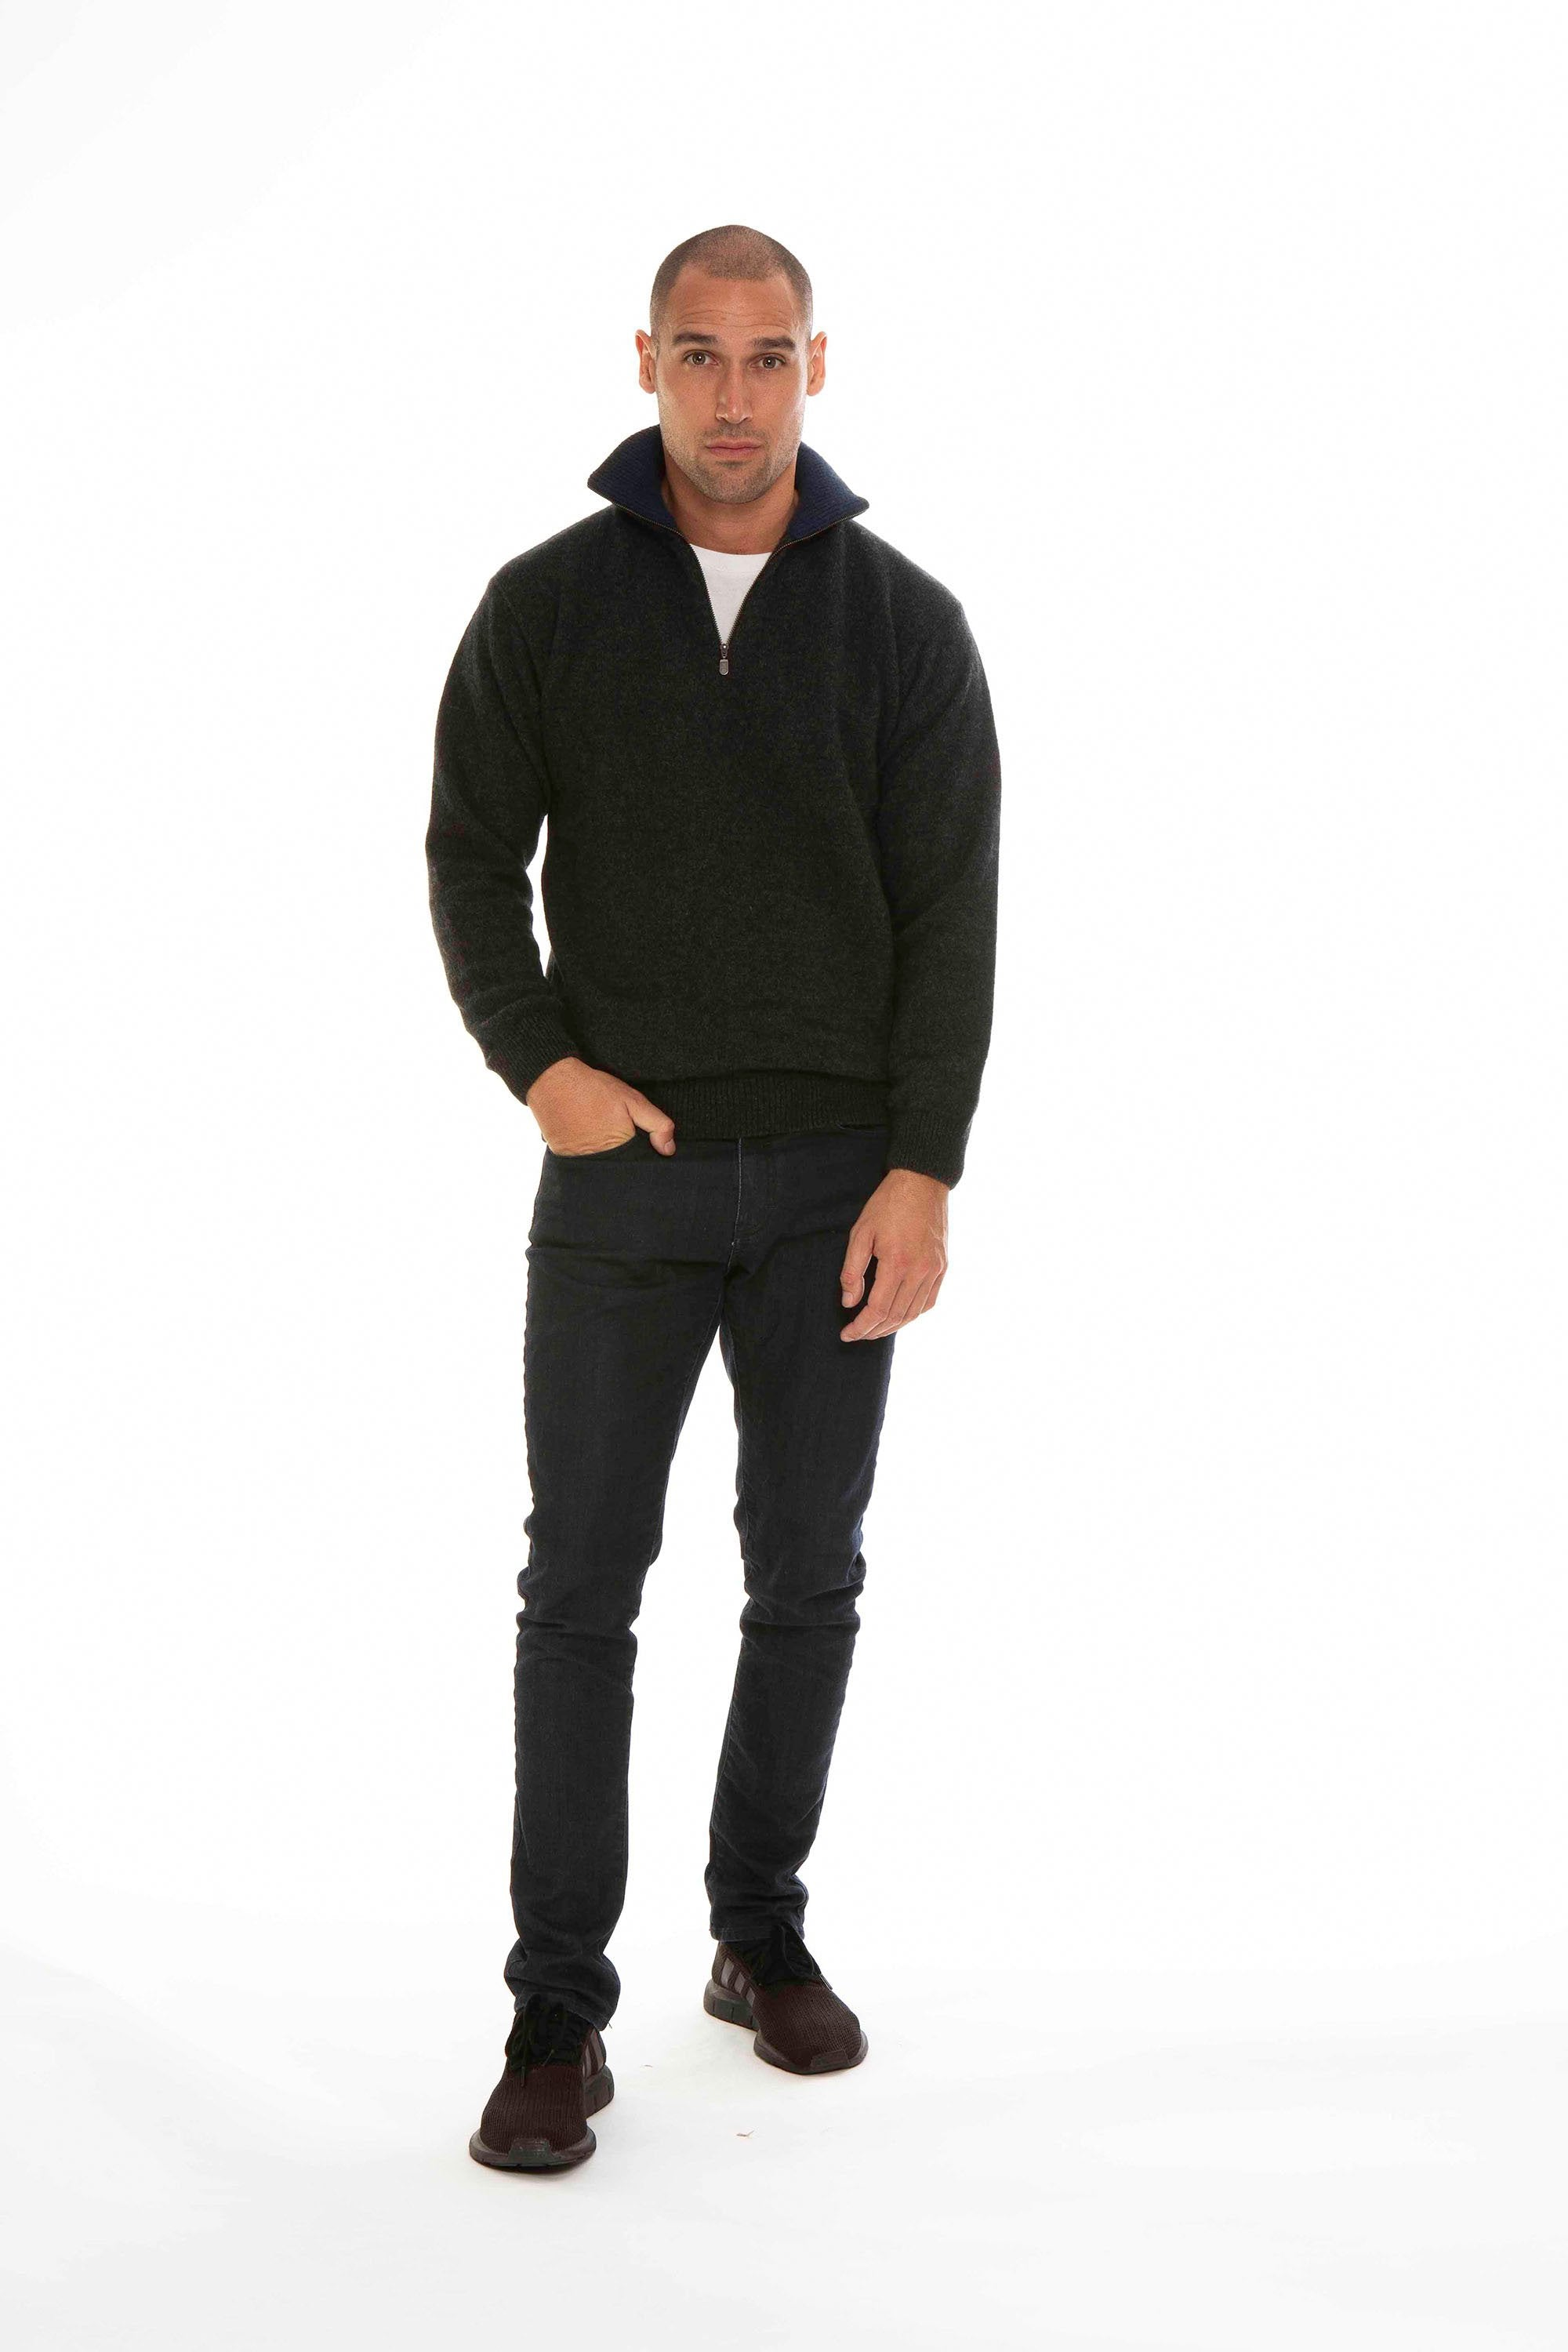 ZIP COLLAR JUMPER - Woolshed Gallery